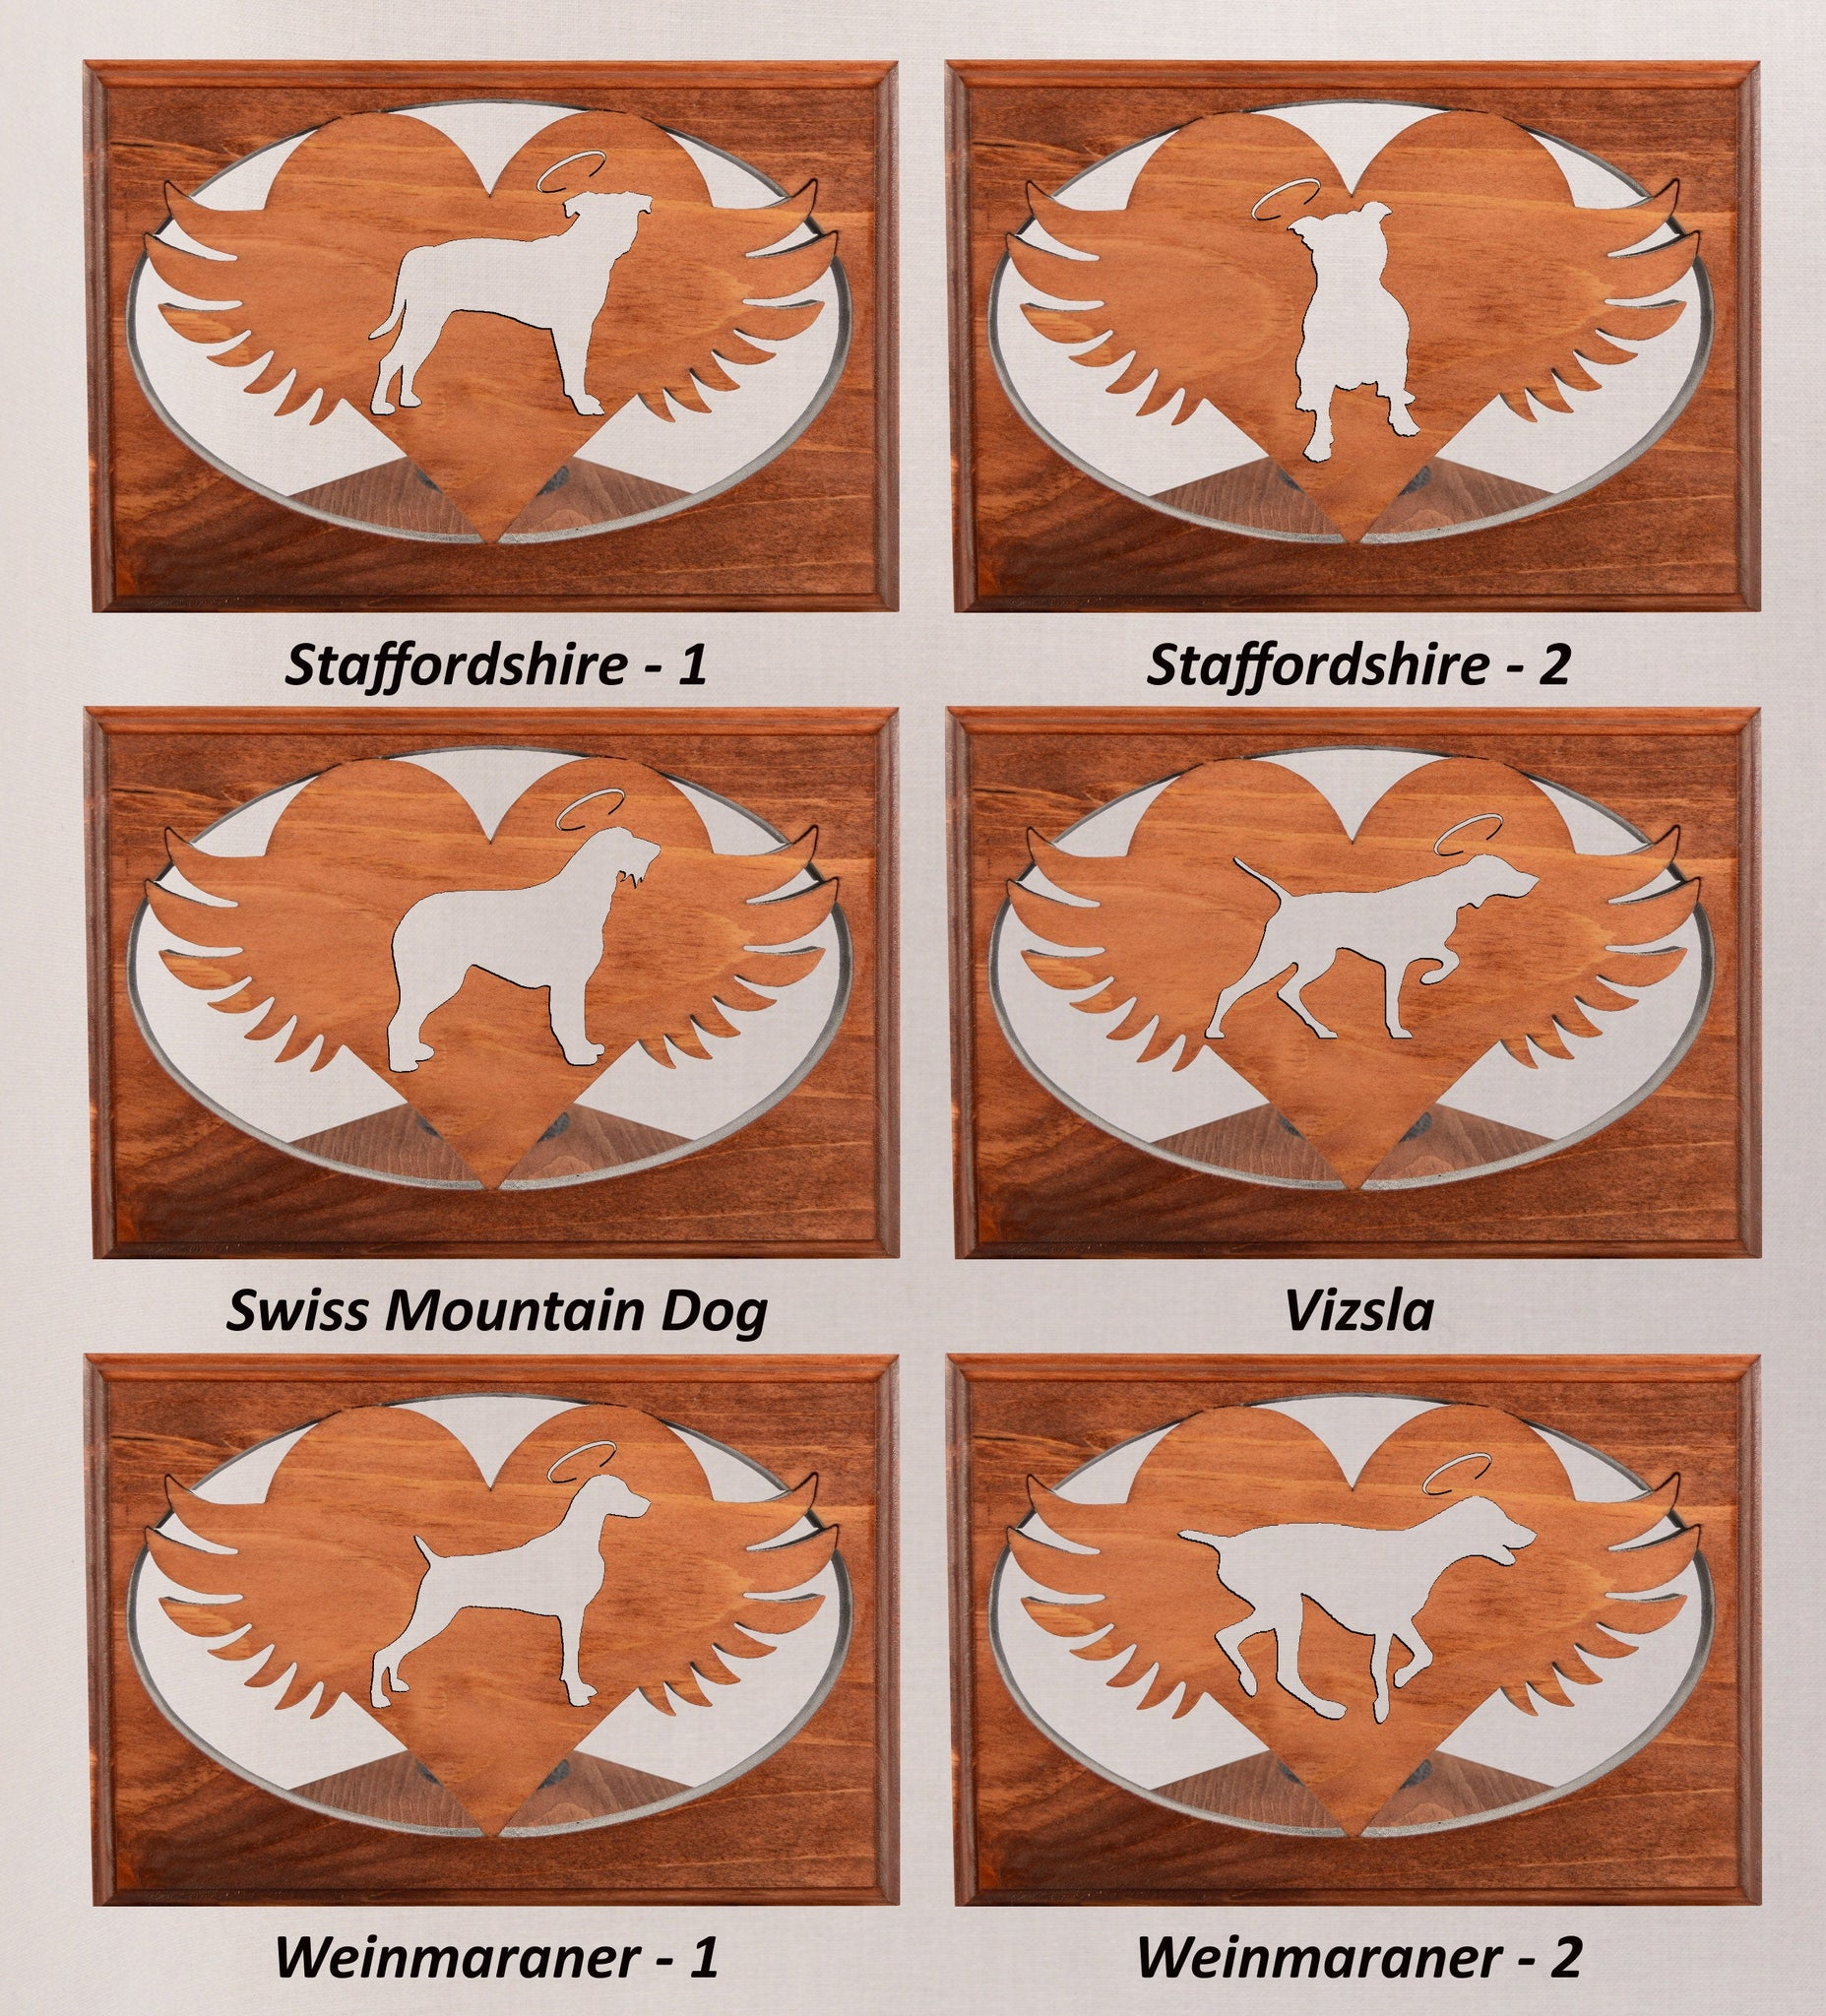 Staffie • Swiss Mountain • Vizsla • Weimaraner - Personalized Dog Memorial • Angel Wing Tealight Candle Holder